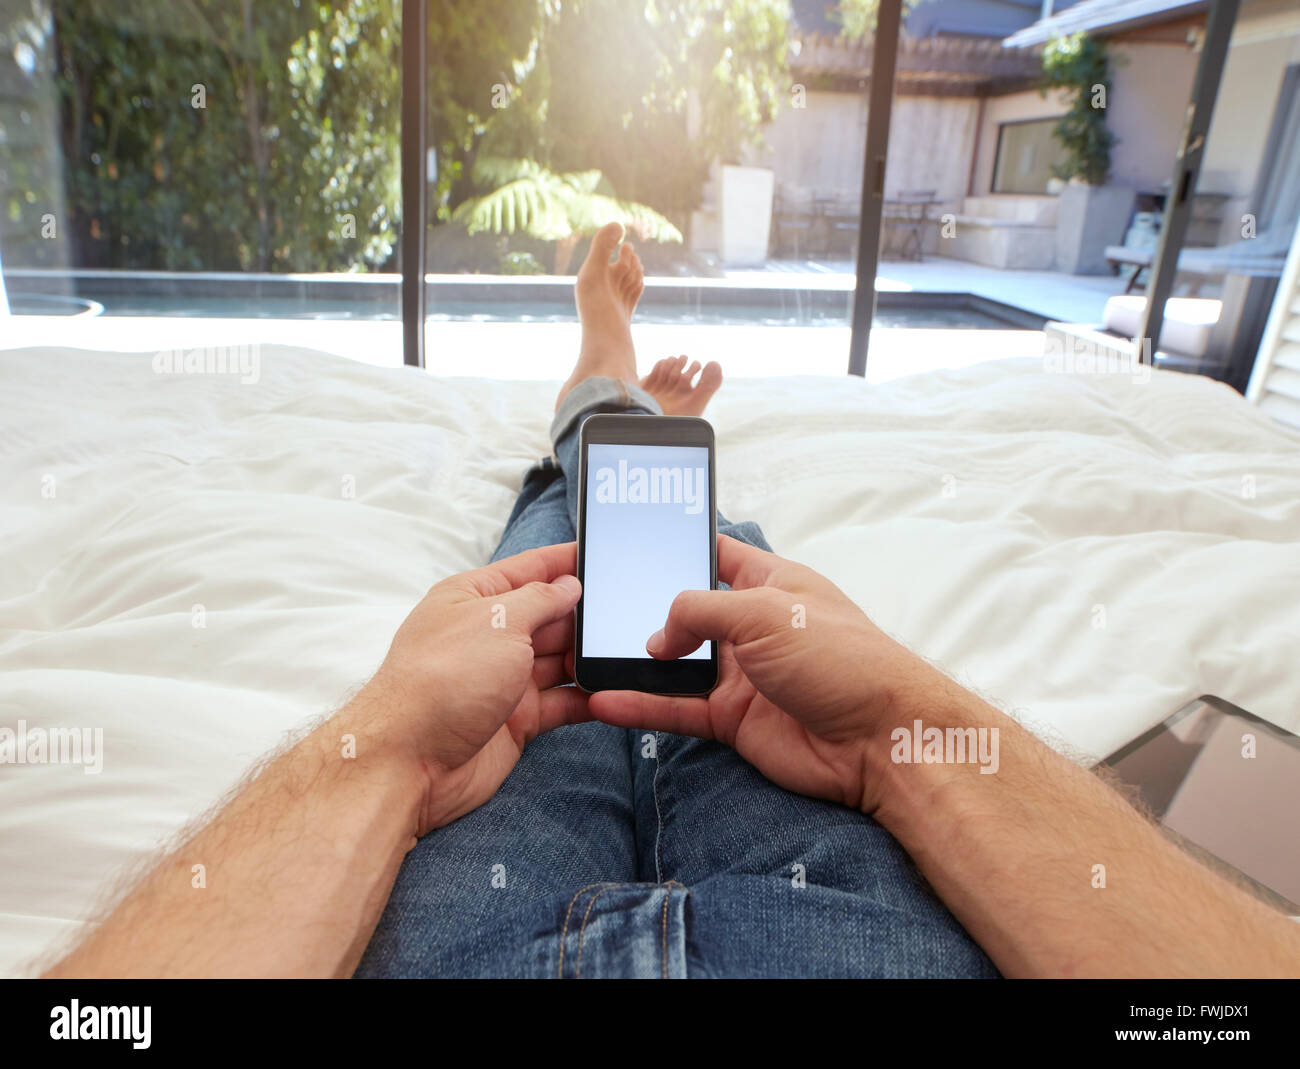 Closeup image of man lying on a bed holding a mobile phone with blank screen. POV shot of man relaxing in bedroom - Stock Image